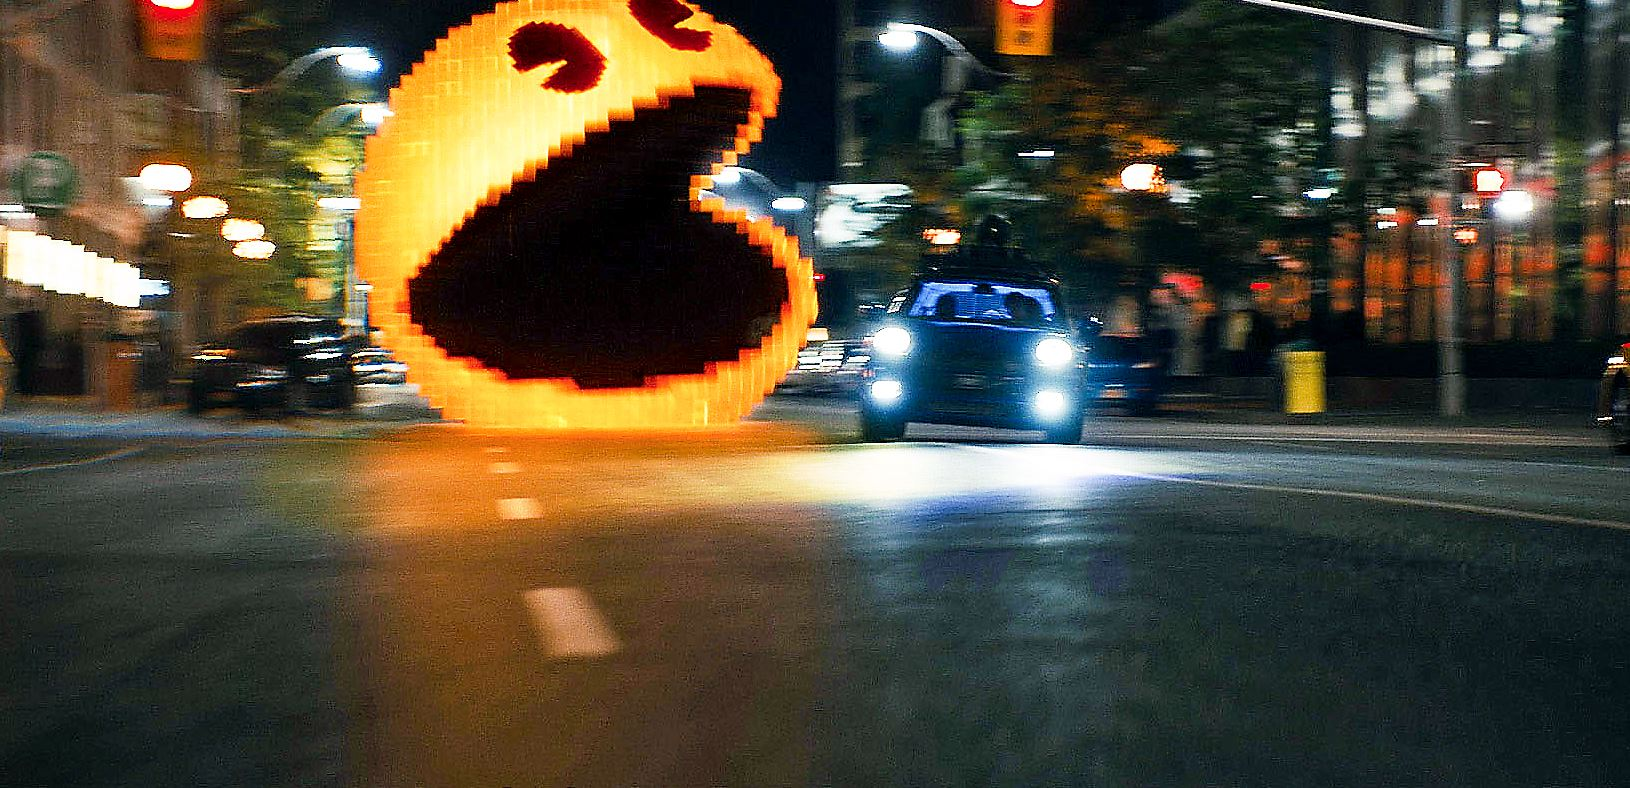 movie review pixels falls apart in the playing old